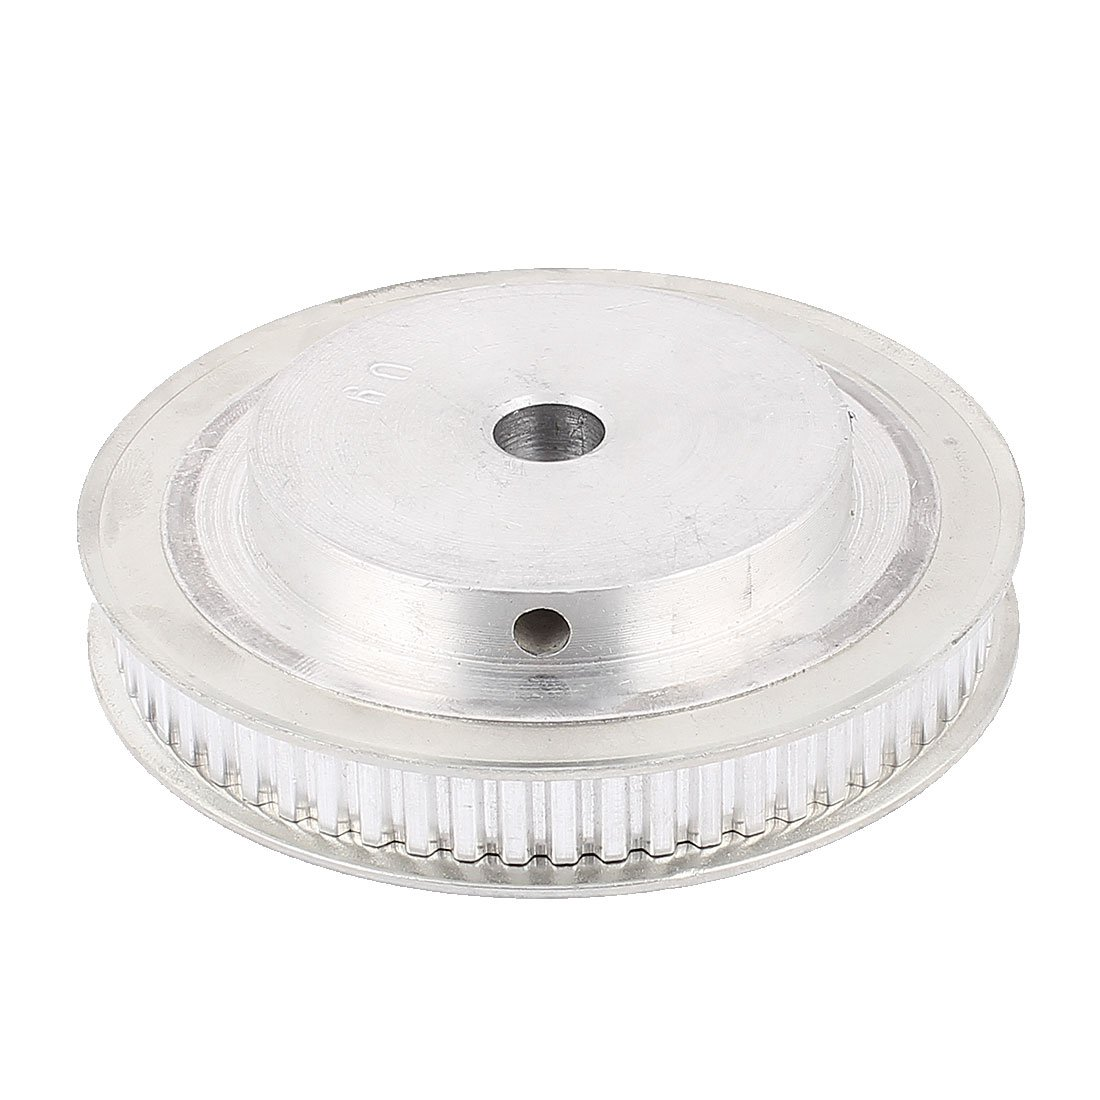 uxcell XL60 60 Teeth 12mm Bore Dia 10mm Width Belt Motor Drive Timing Pulley